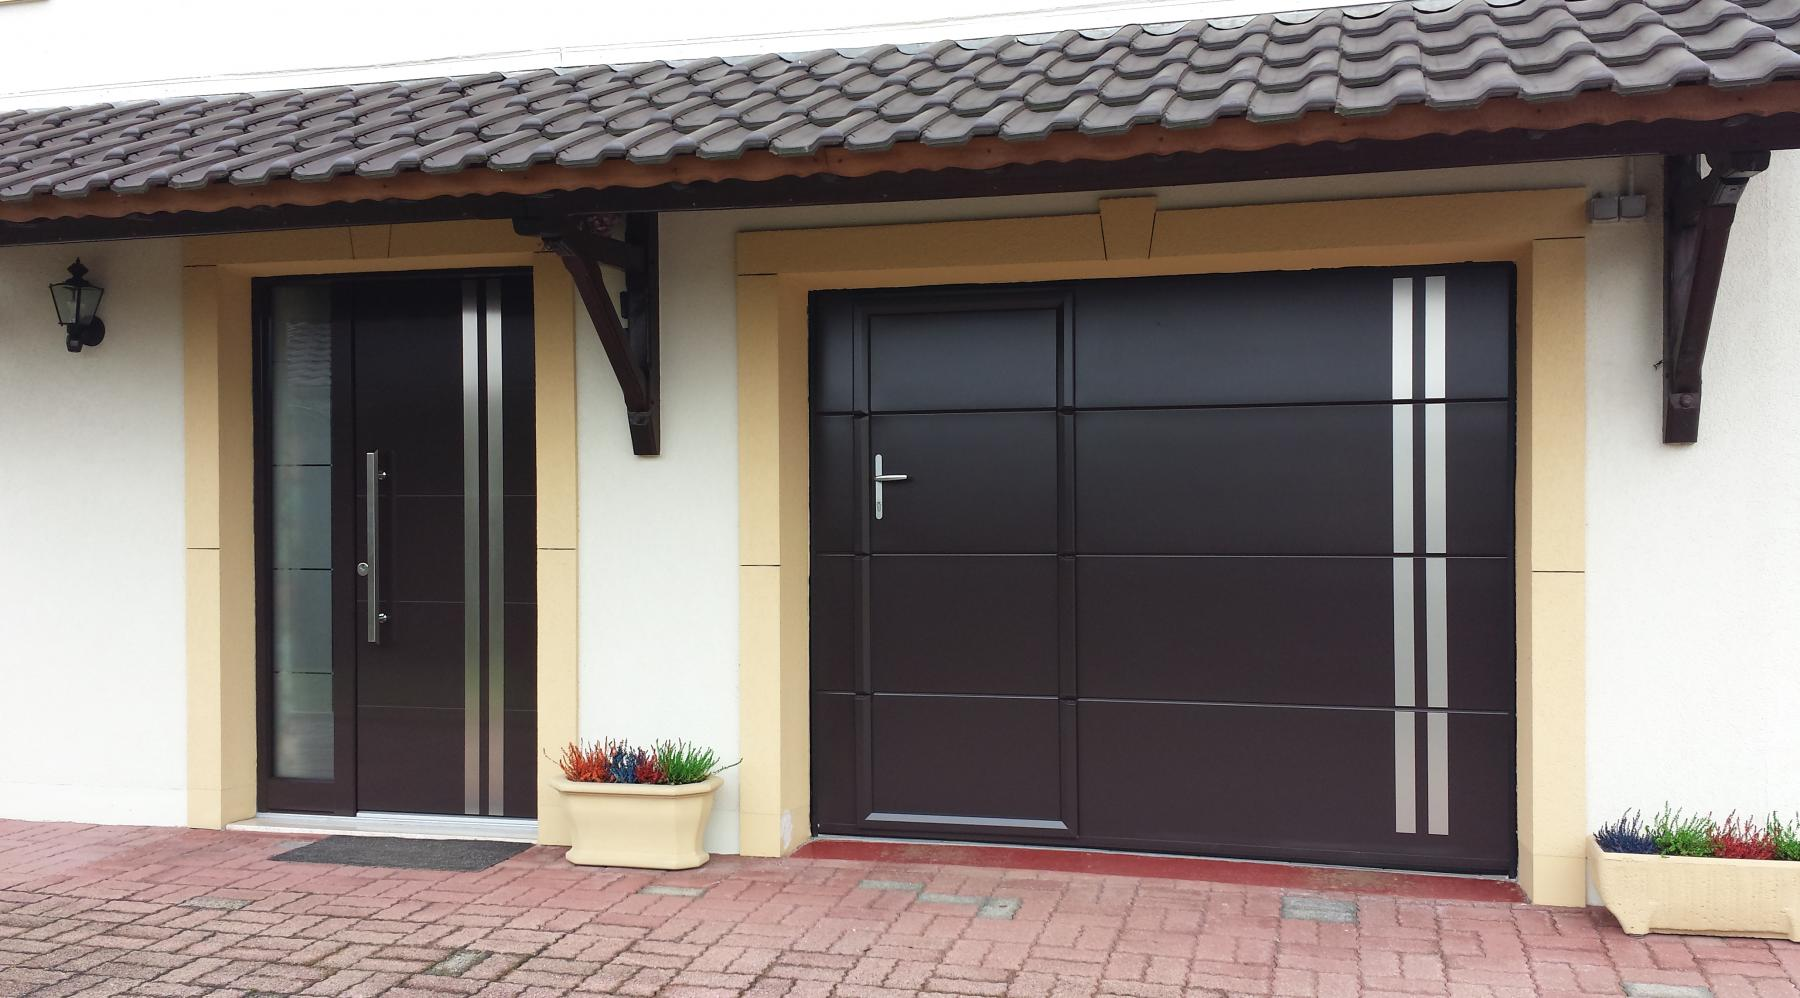 Galerie portes de garage weigerding for Remplacer porte interieur